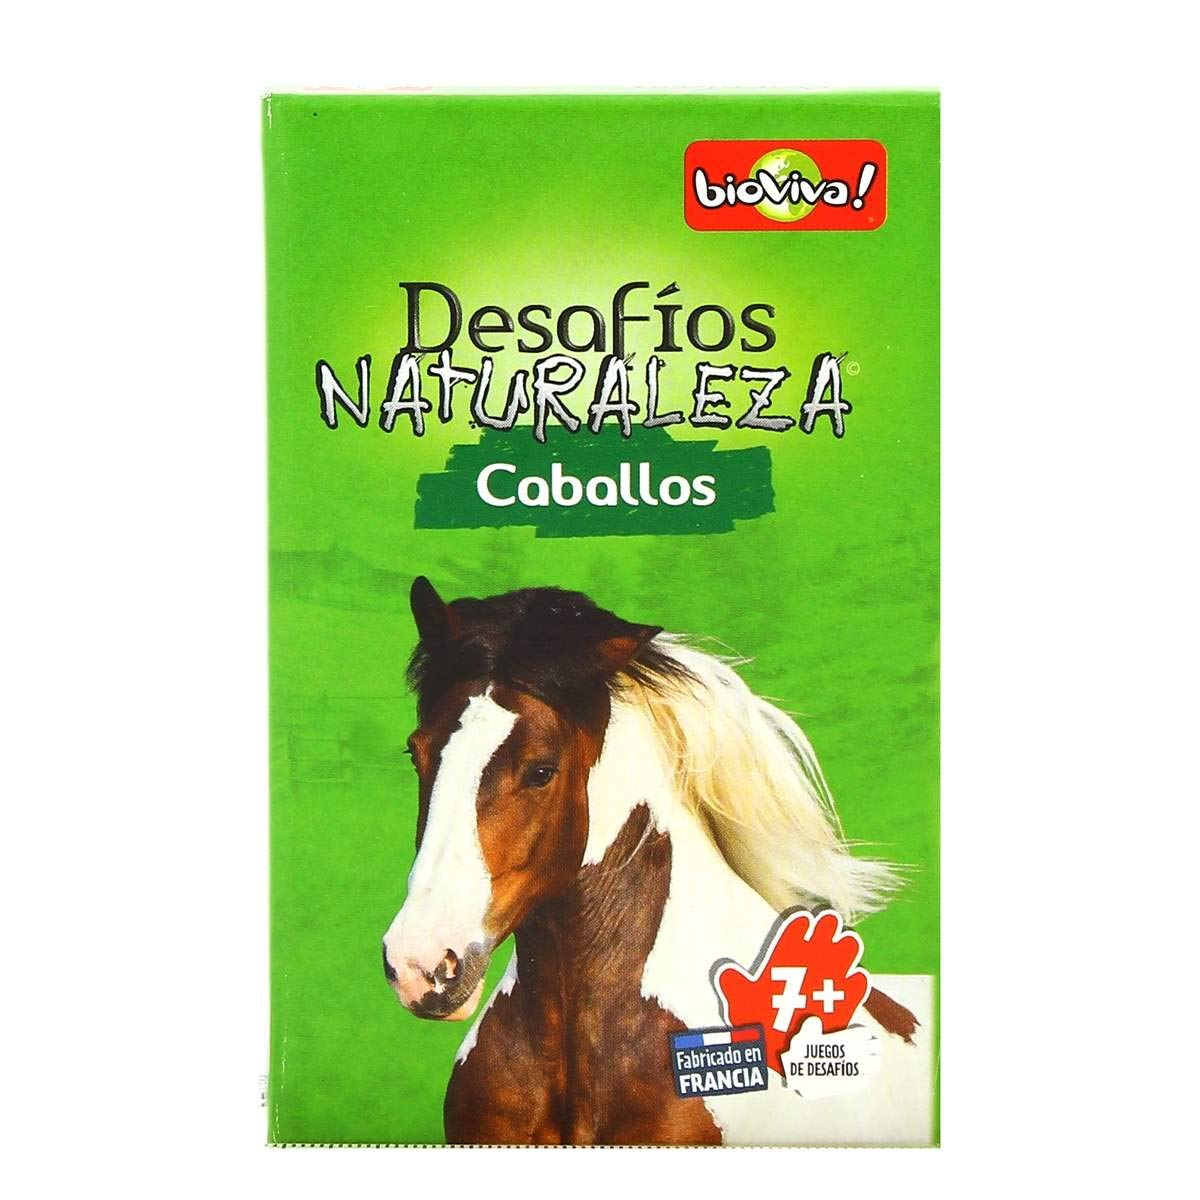 Bioviva 660099 Nature Challenges Animals-Horses Card Game, Language-Spanish, Multi-Color